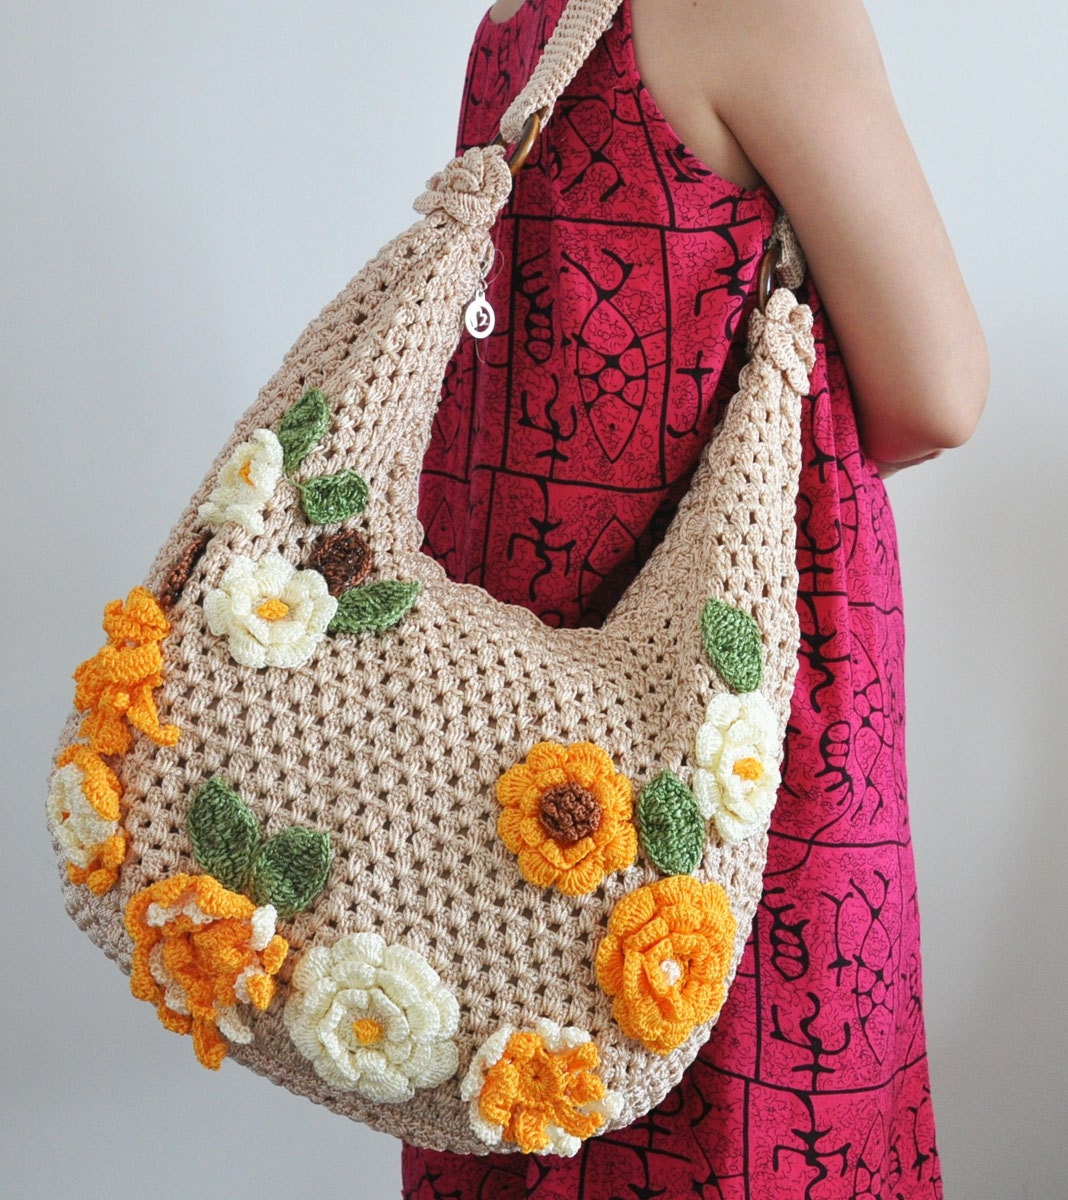 Crochet Handbags : FLORAL BAG 5 Crochet Flower Applique Bag by jennysunny on Etsy